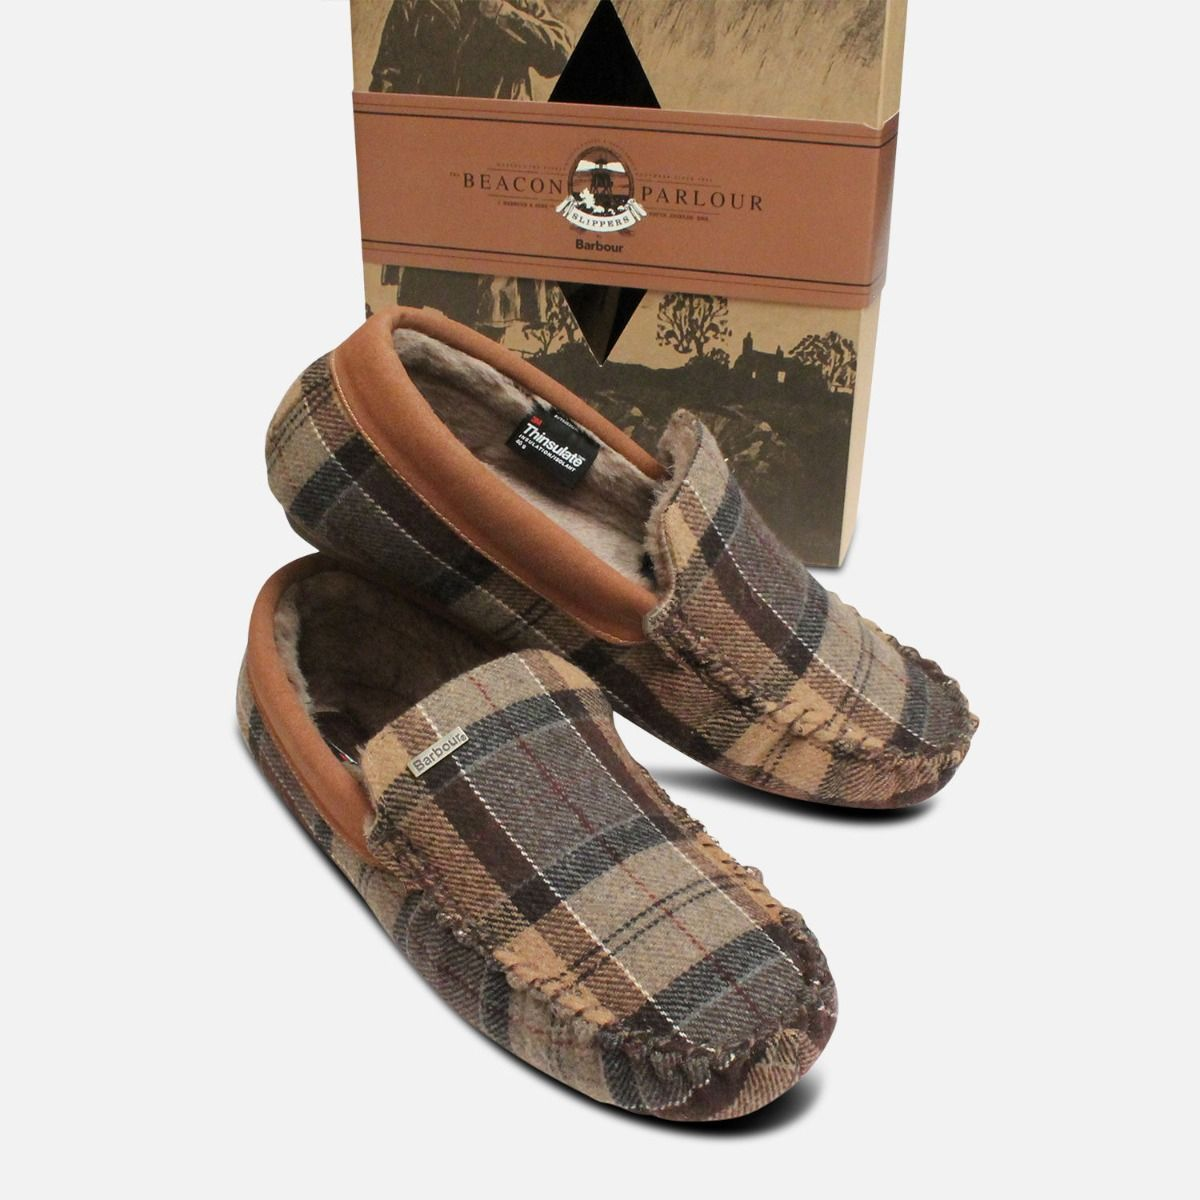 822c2bfb0ebb Barbour Thinsulate Warm Tartan Mens Slippers in Camel